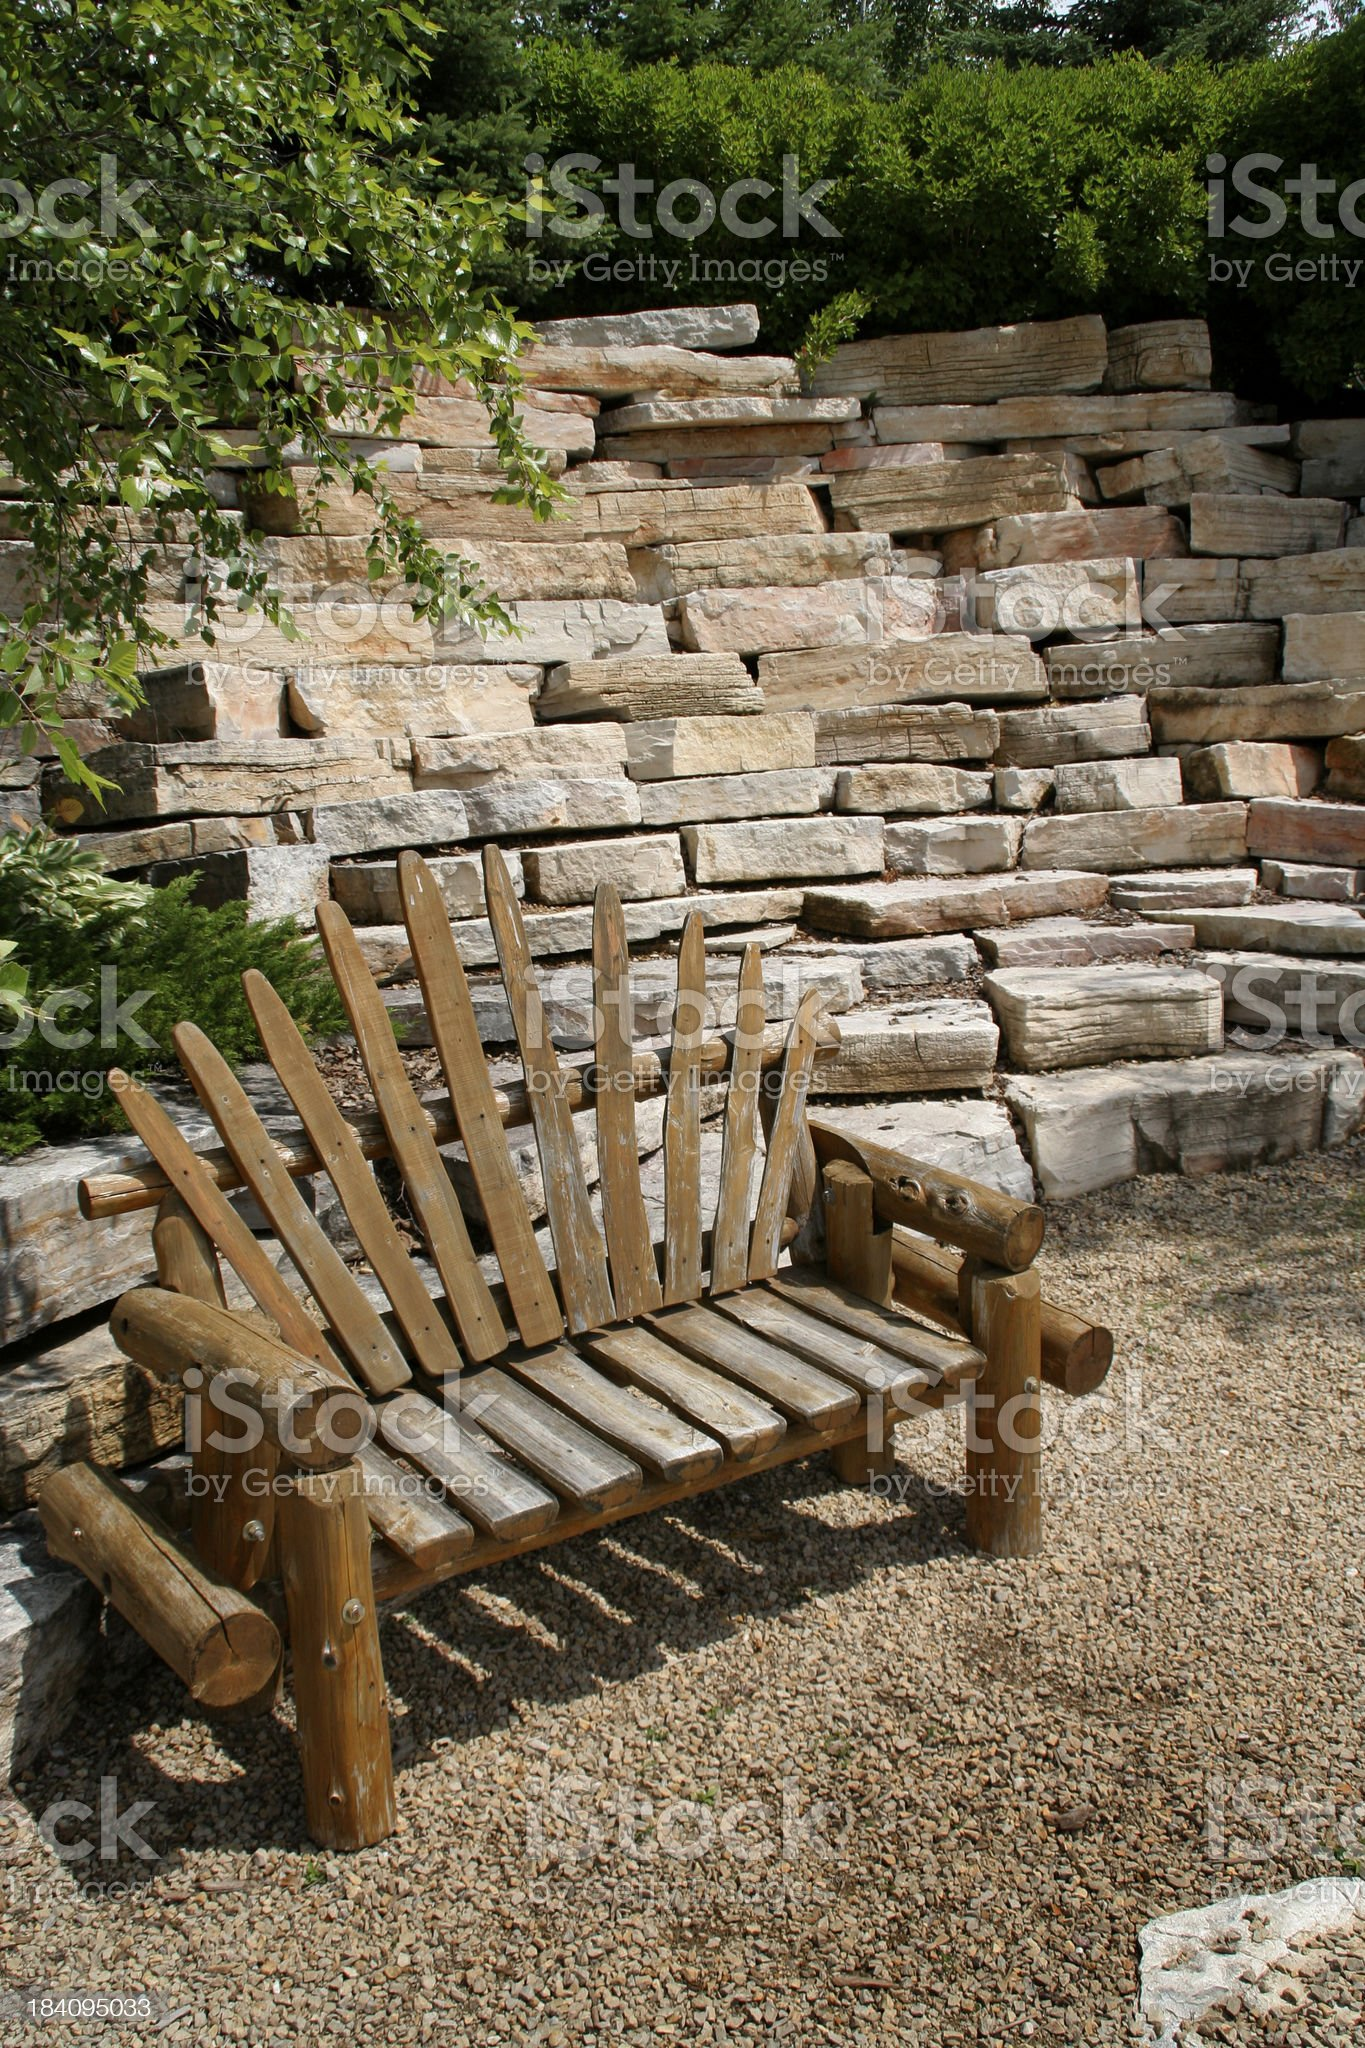 Hardscape Garden Landscaping with Rustic Log Bench, Rock, Stone Wall royalty-free stock photo